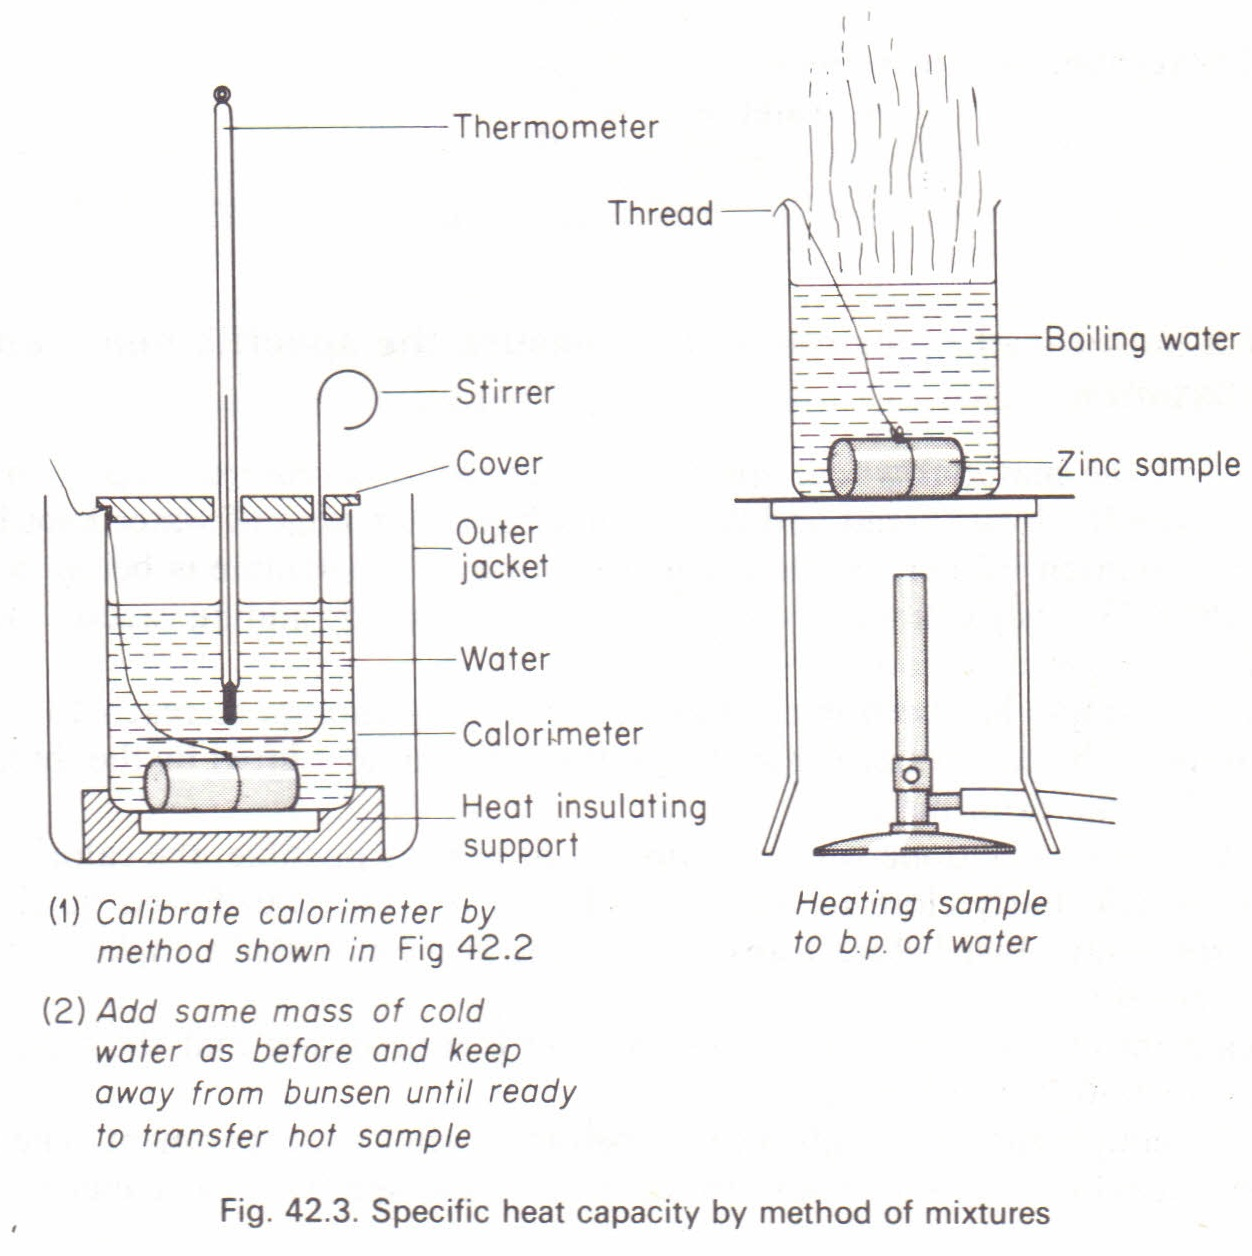 hight resolution of to measure the specific heat capacity by the method of mixtures